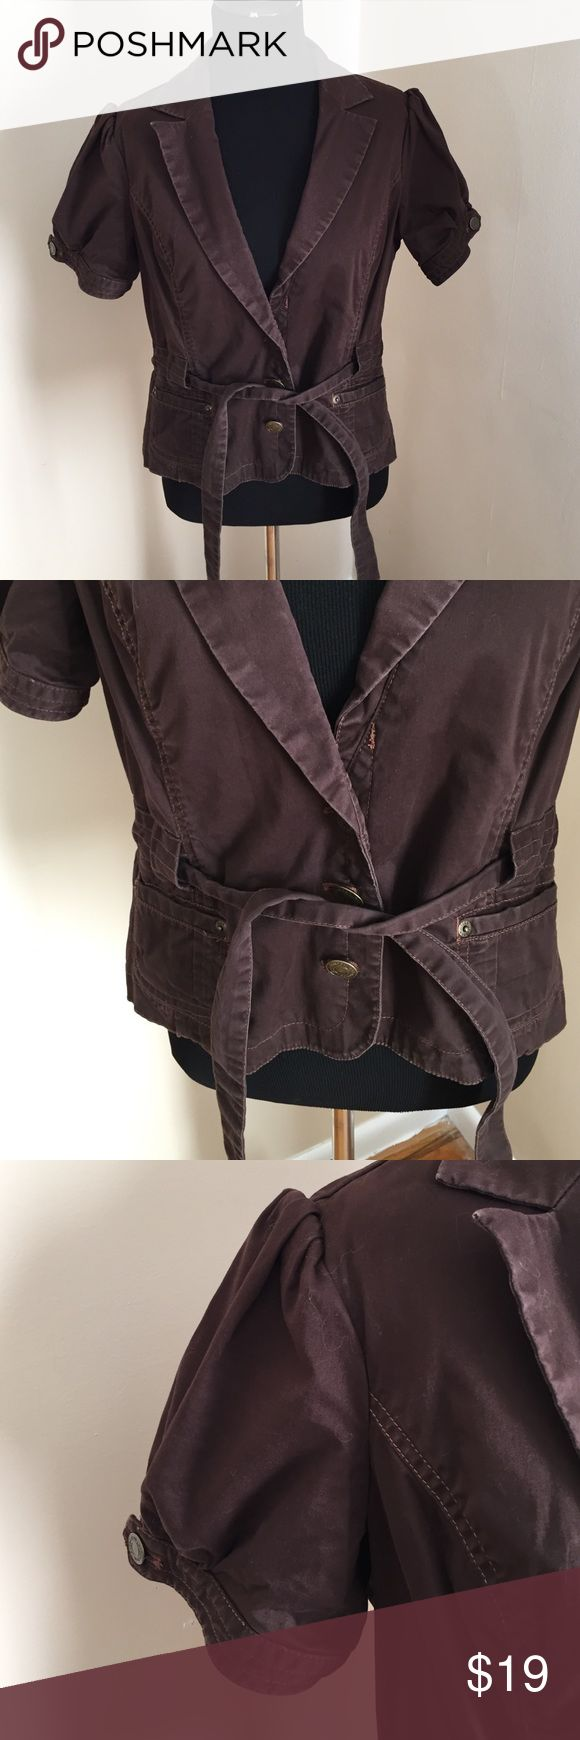 London jeans brown Distressed jacket top. M London jeans by Victoria's Secret jacket top brown distressed. it is a size 12 but fits more like an eight or 10 it is very small cut. Super cute and looks great with the tank under it can be dressed up or dressed down in very good condition and it's one of my favorites london jeans Tops